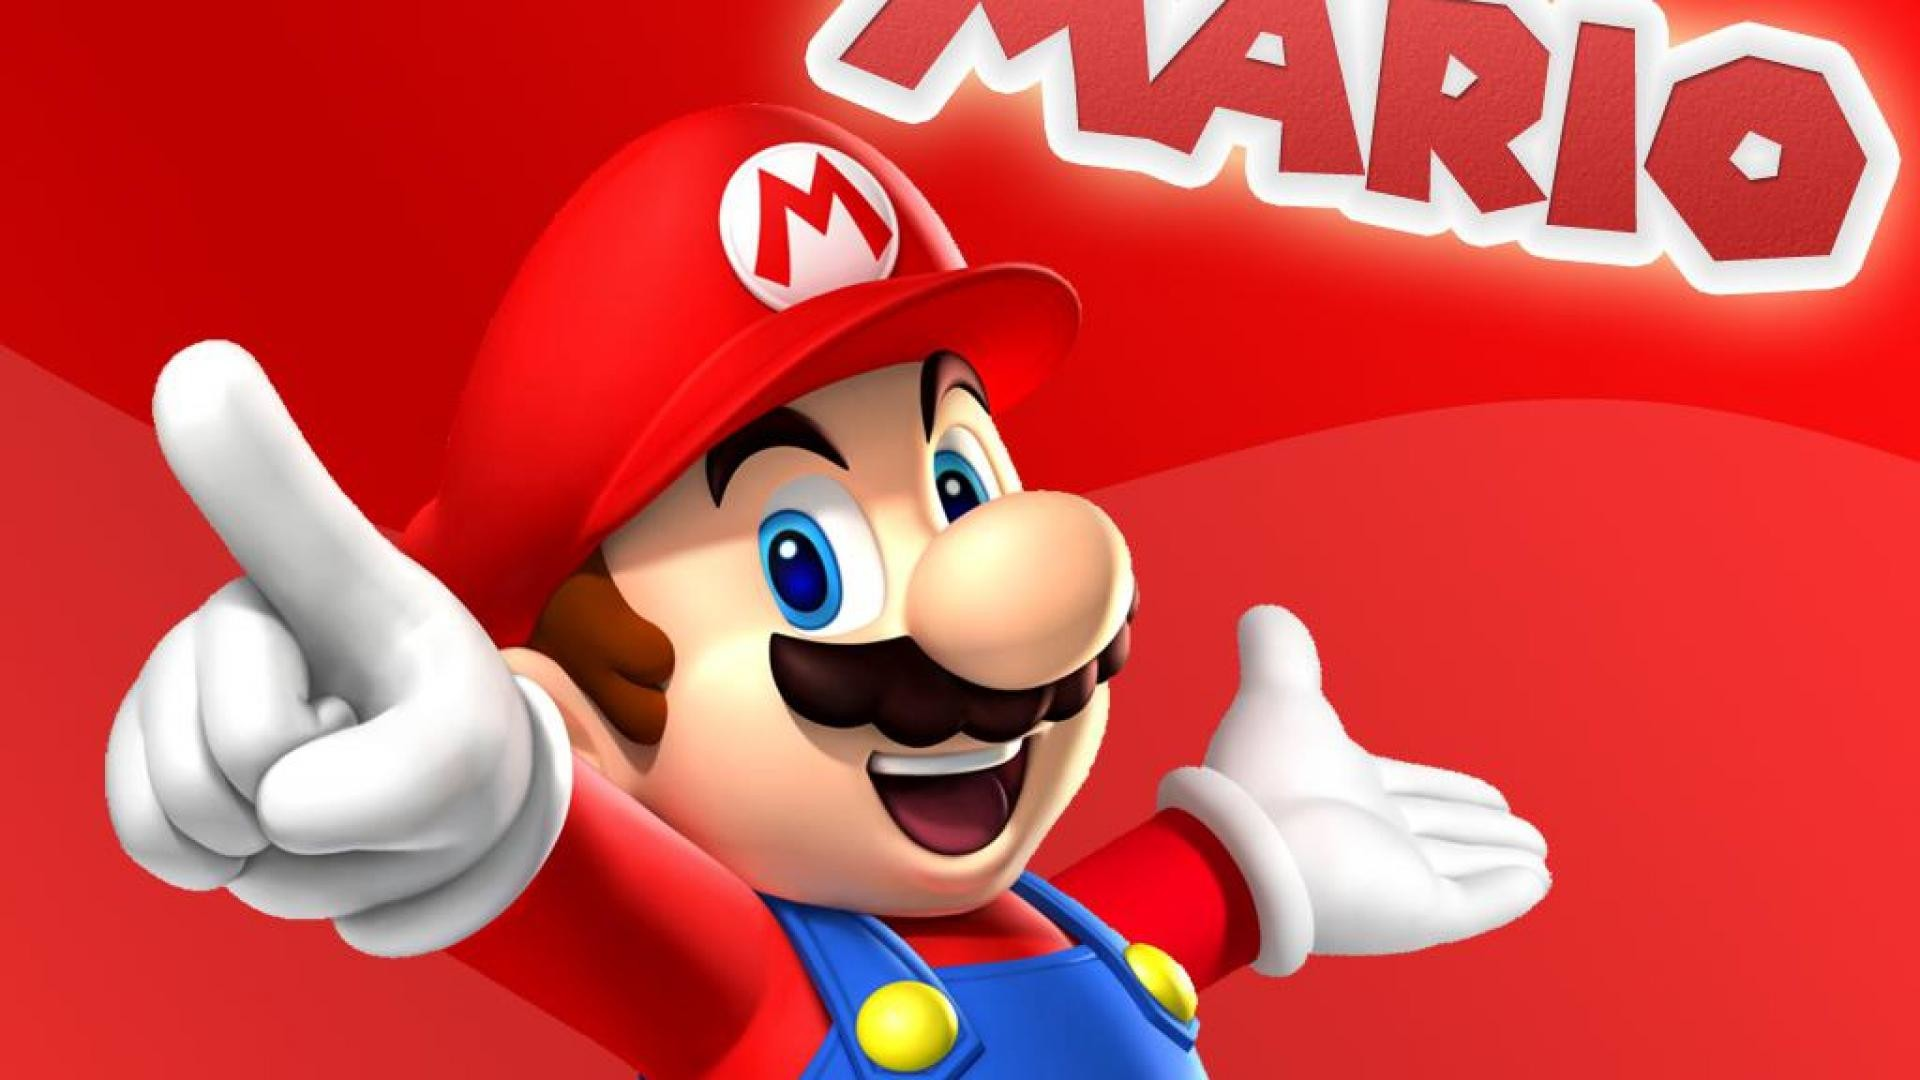 Wallpaper Live Android Super Mario – YouTube   Download Wallpaper    Pinterest   Android video, Live wallpapers and Wallpaper